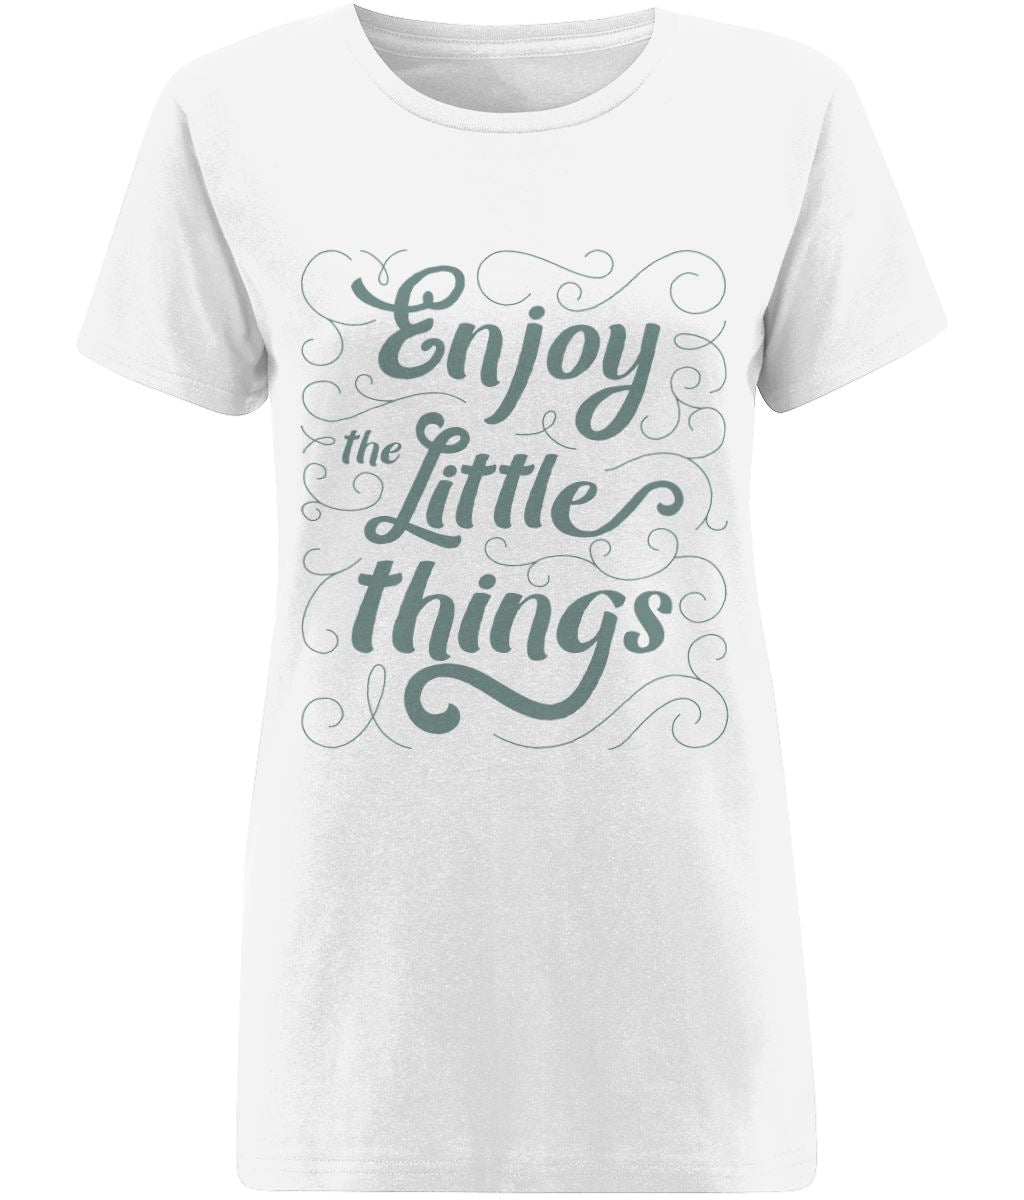 'Enjoy The Little Things' Quotes T-shirt | Sustainable Fashion - IndianBelieves